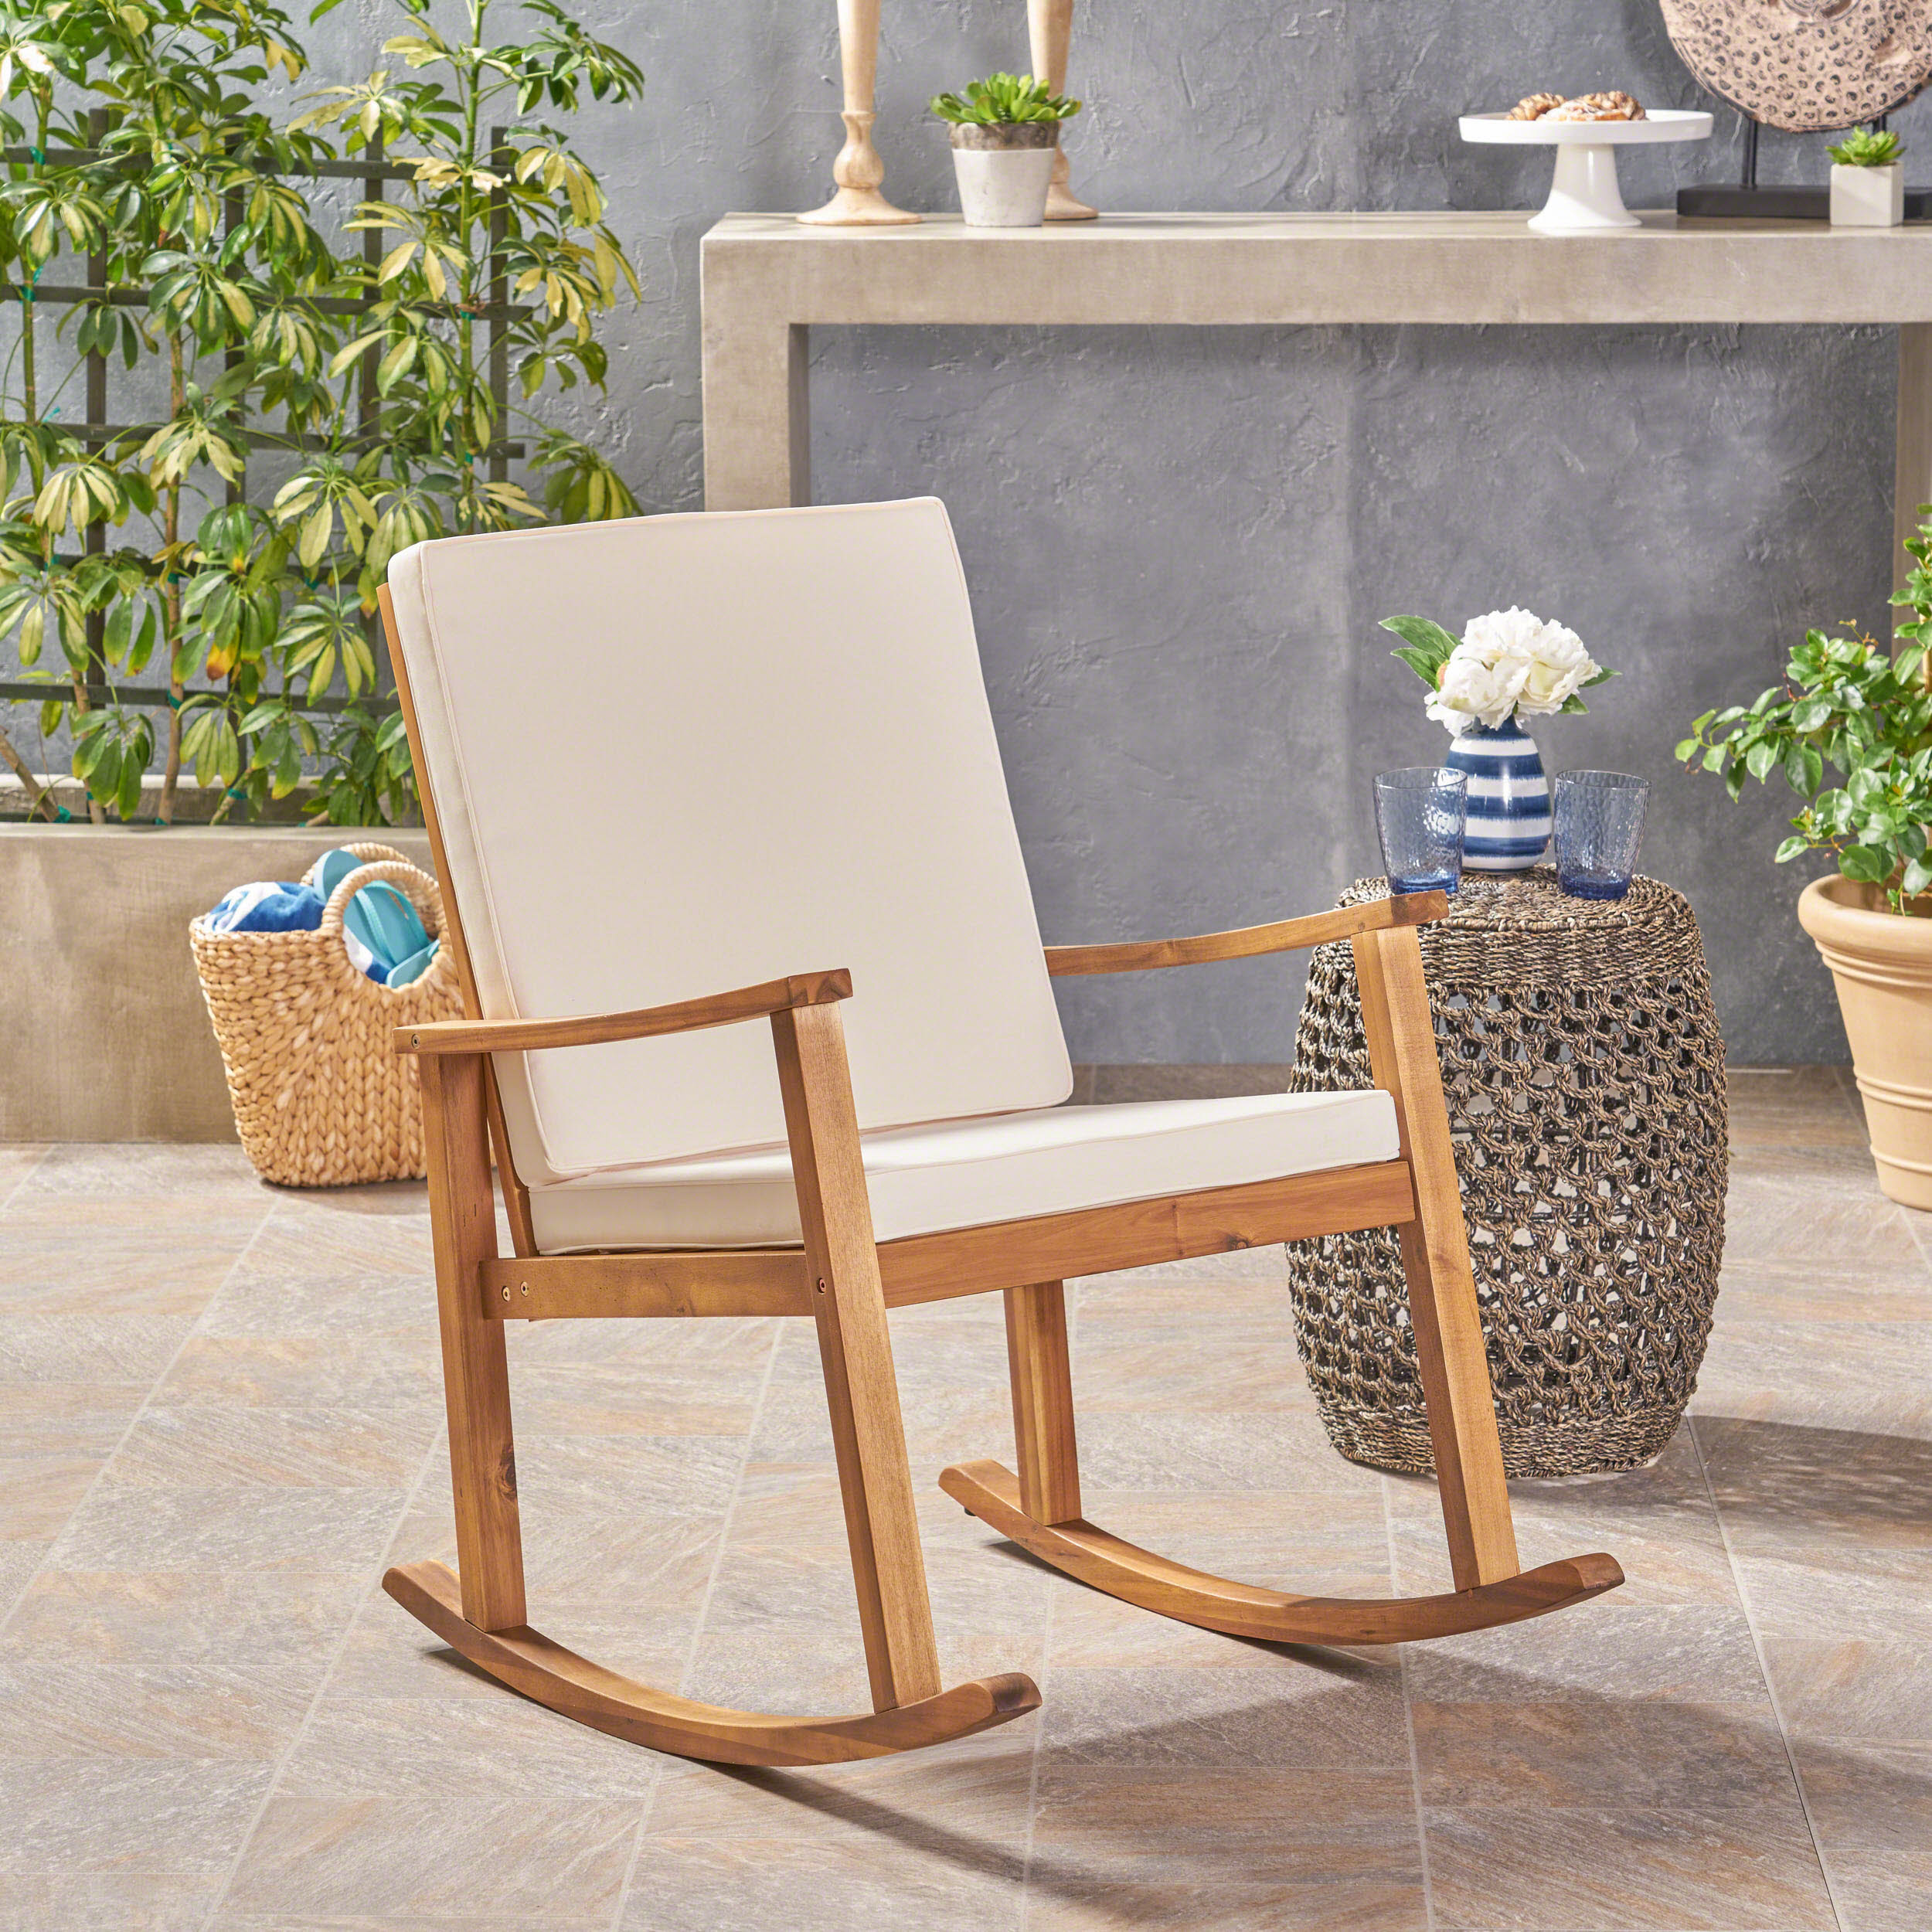 Outdoor Acacia Wood Rocking Chair with Cushion, Teak,Cream